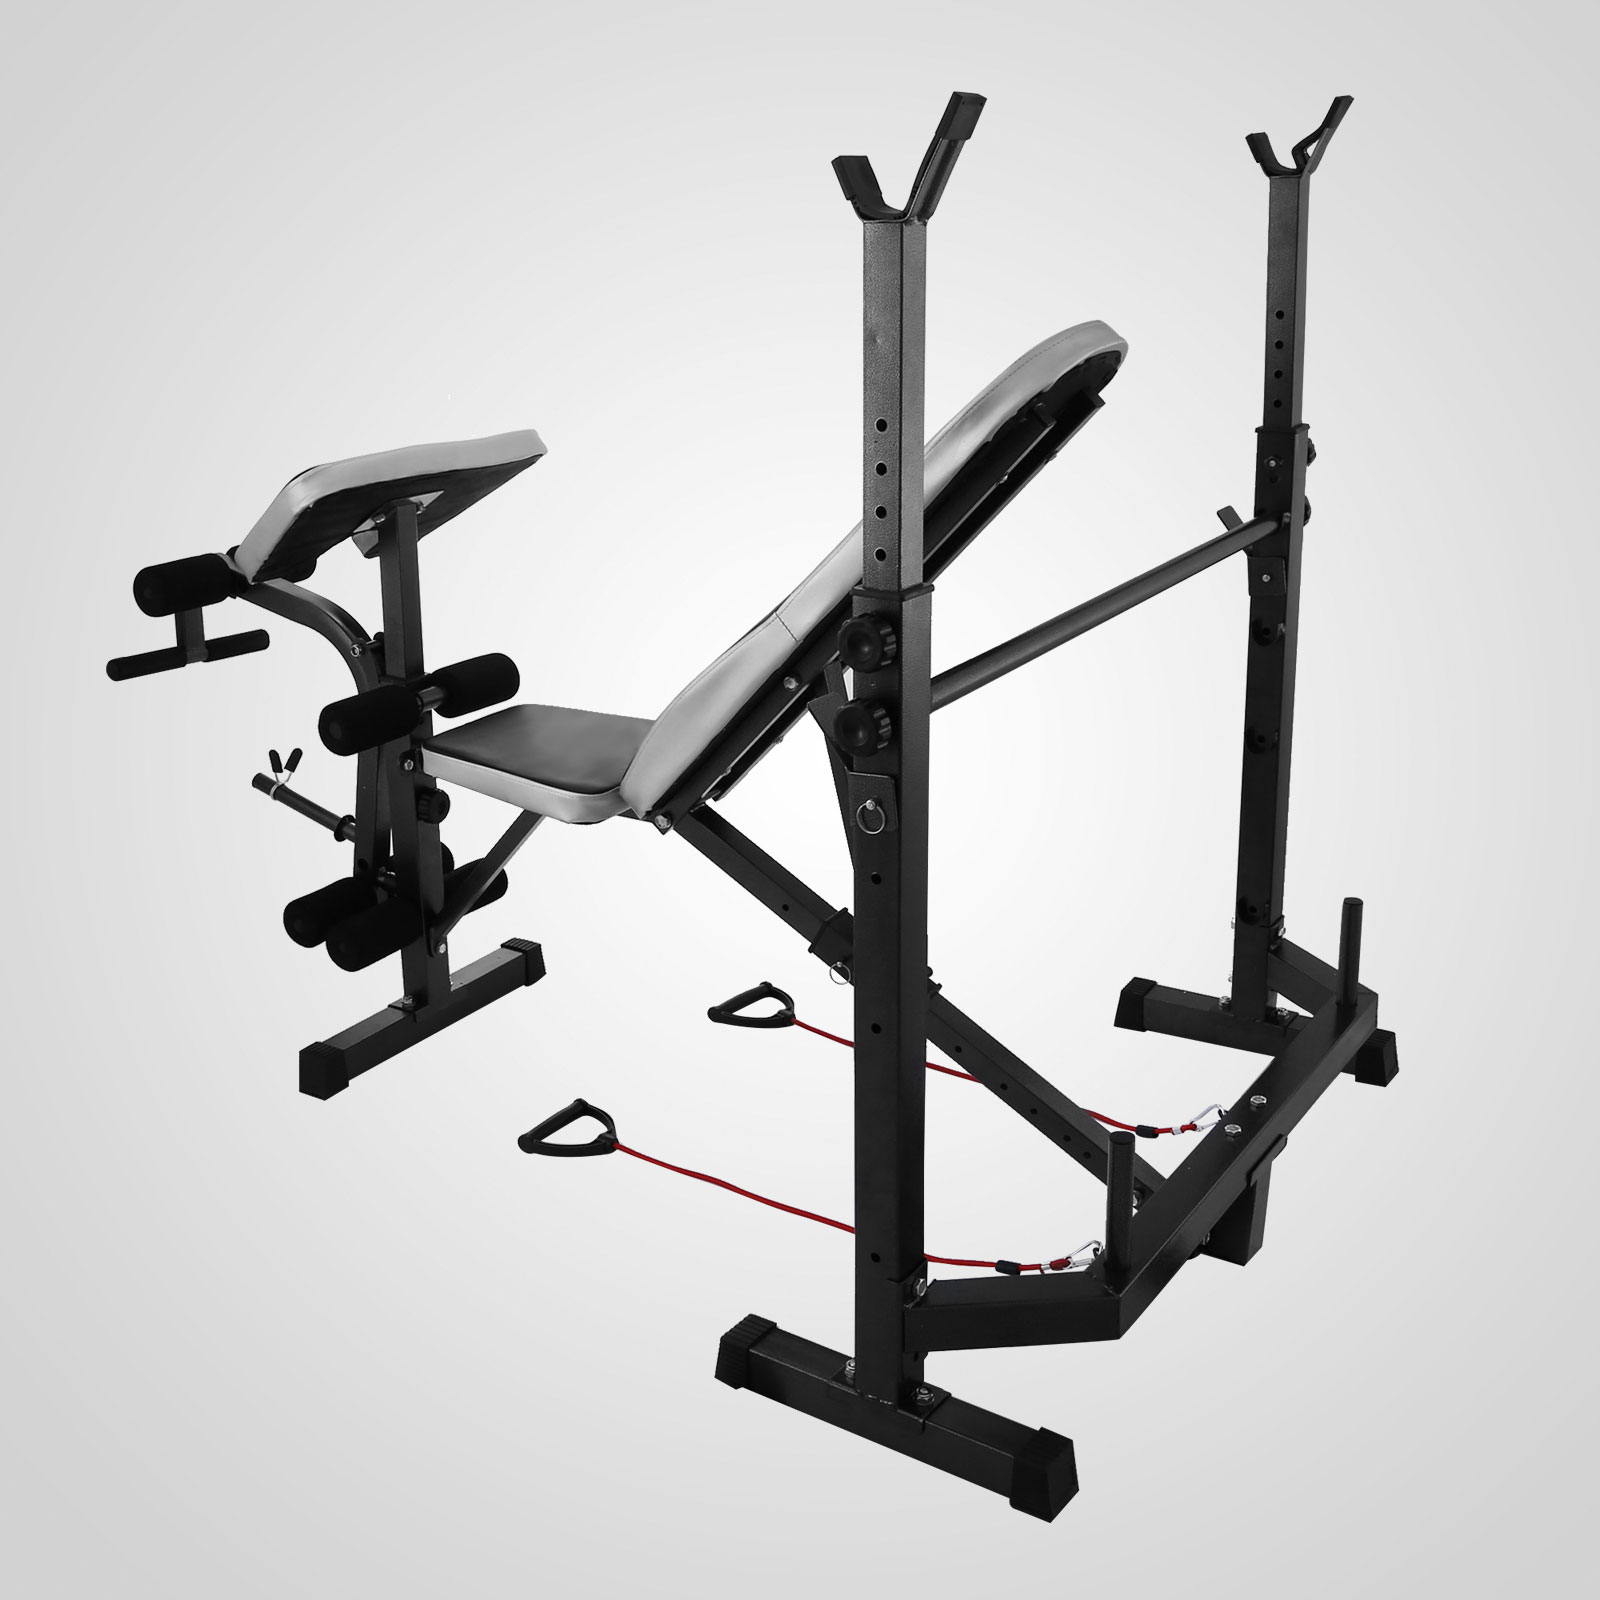 Weight Bench Set Home Gym Deluxe W 660lbs Weights Lifting